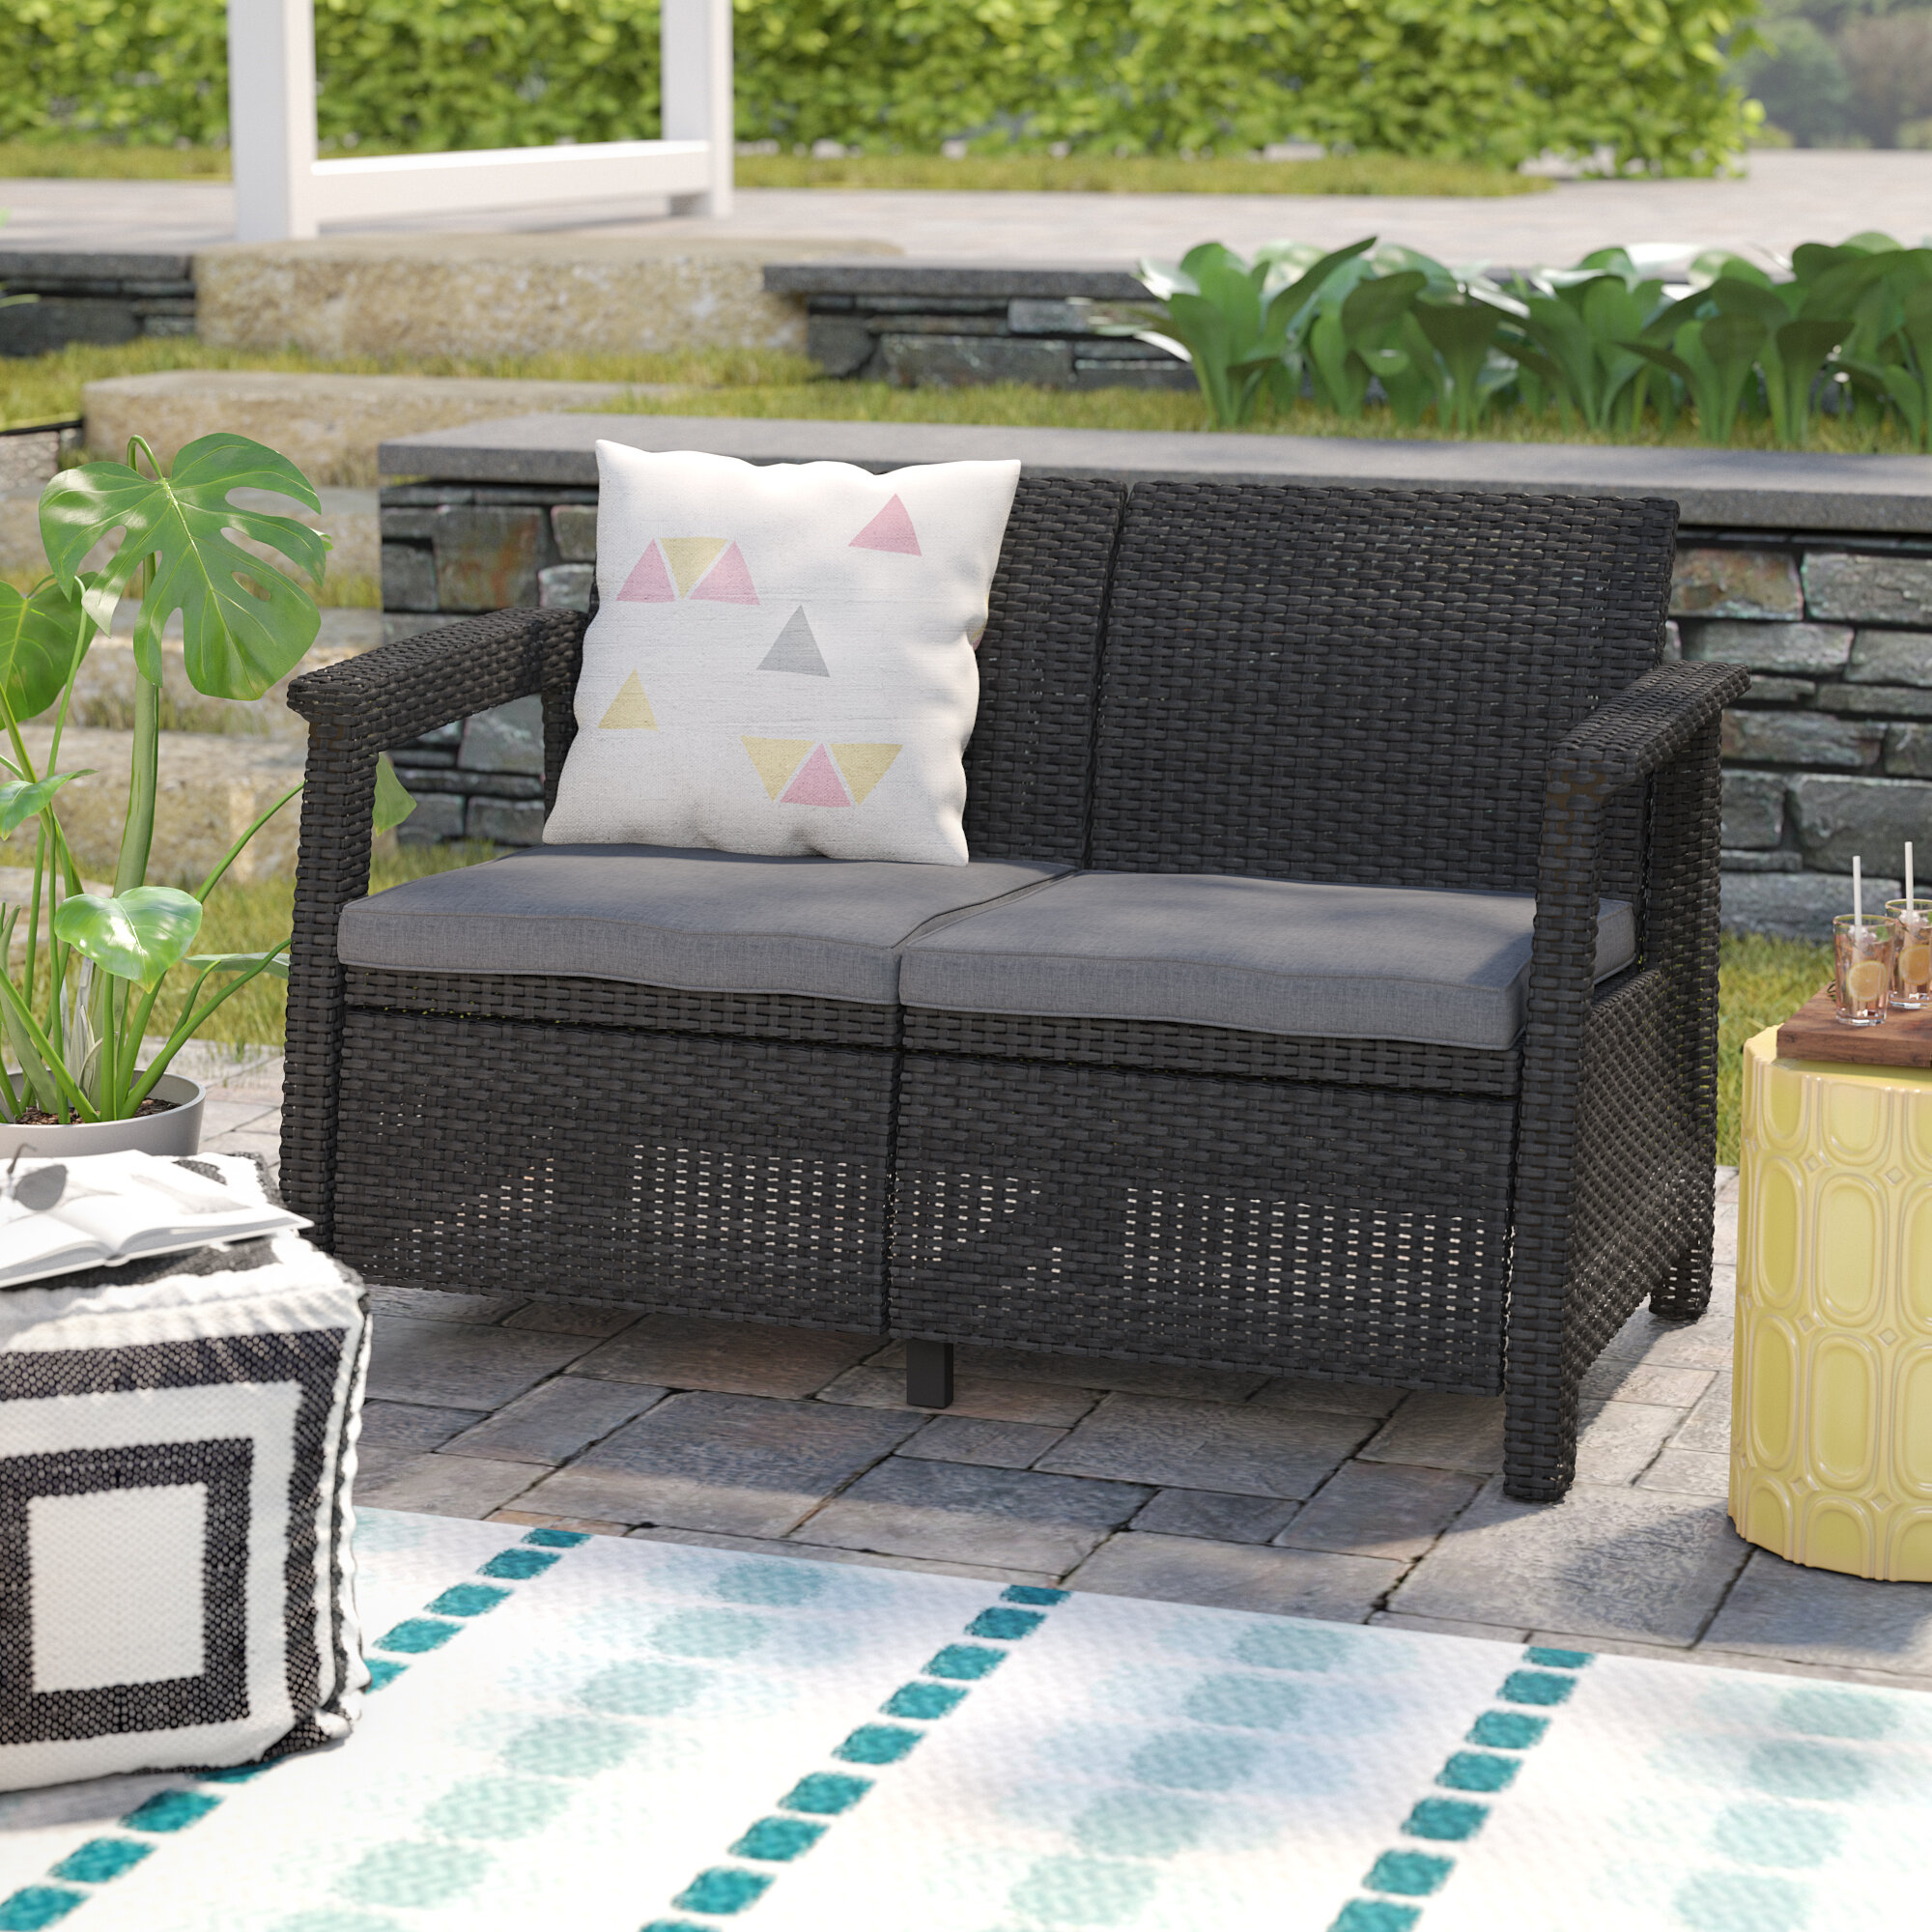 p the sets piece outdoors loveseat with depot weather home furniture torquay all set categories cushions sectional en wicker patio canada blue charleston